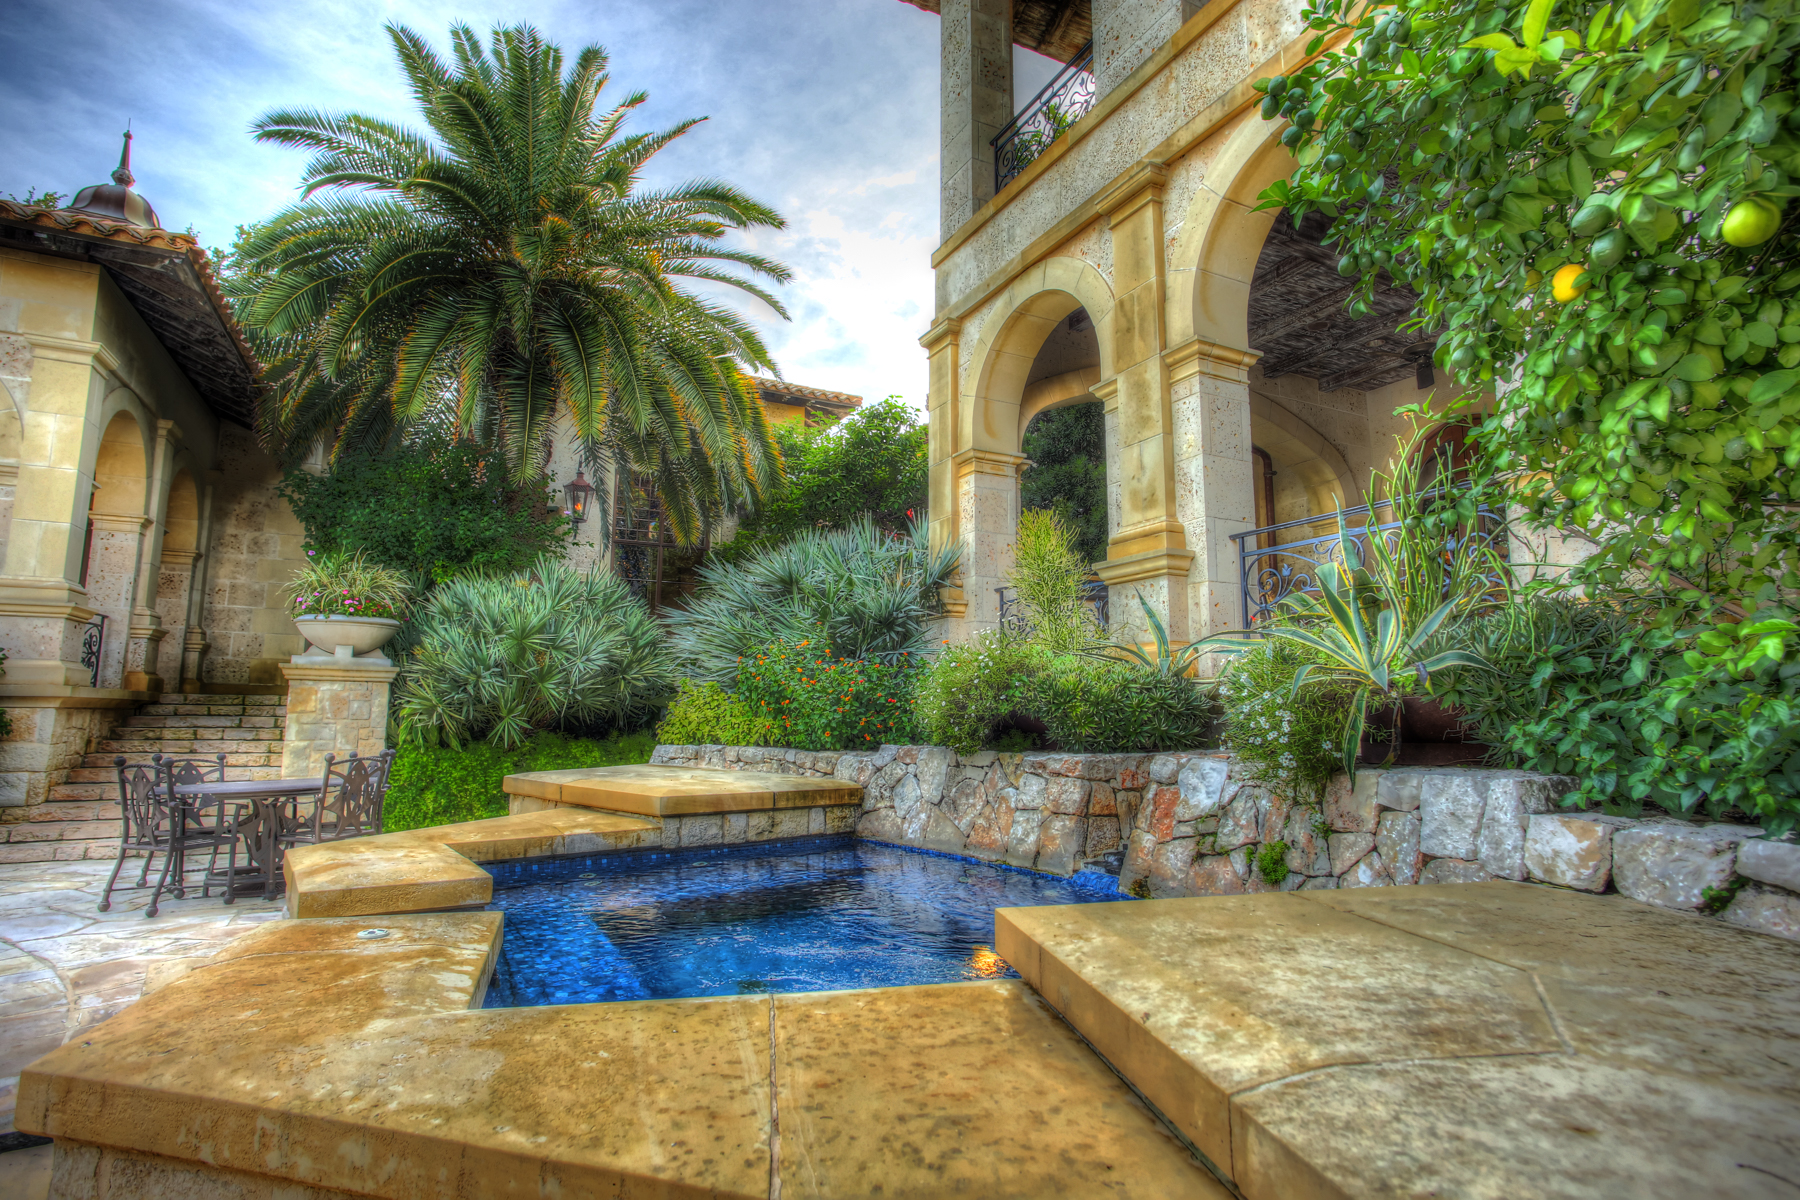 Additional photo for property listing at Palazzo Di Campagna 425 W Bitters San Antonio, Texas 78216 United States